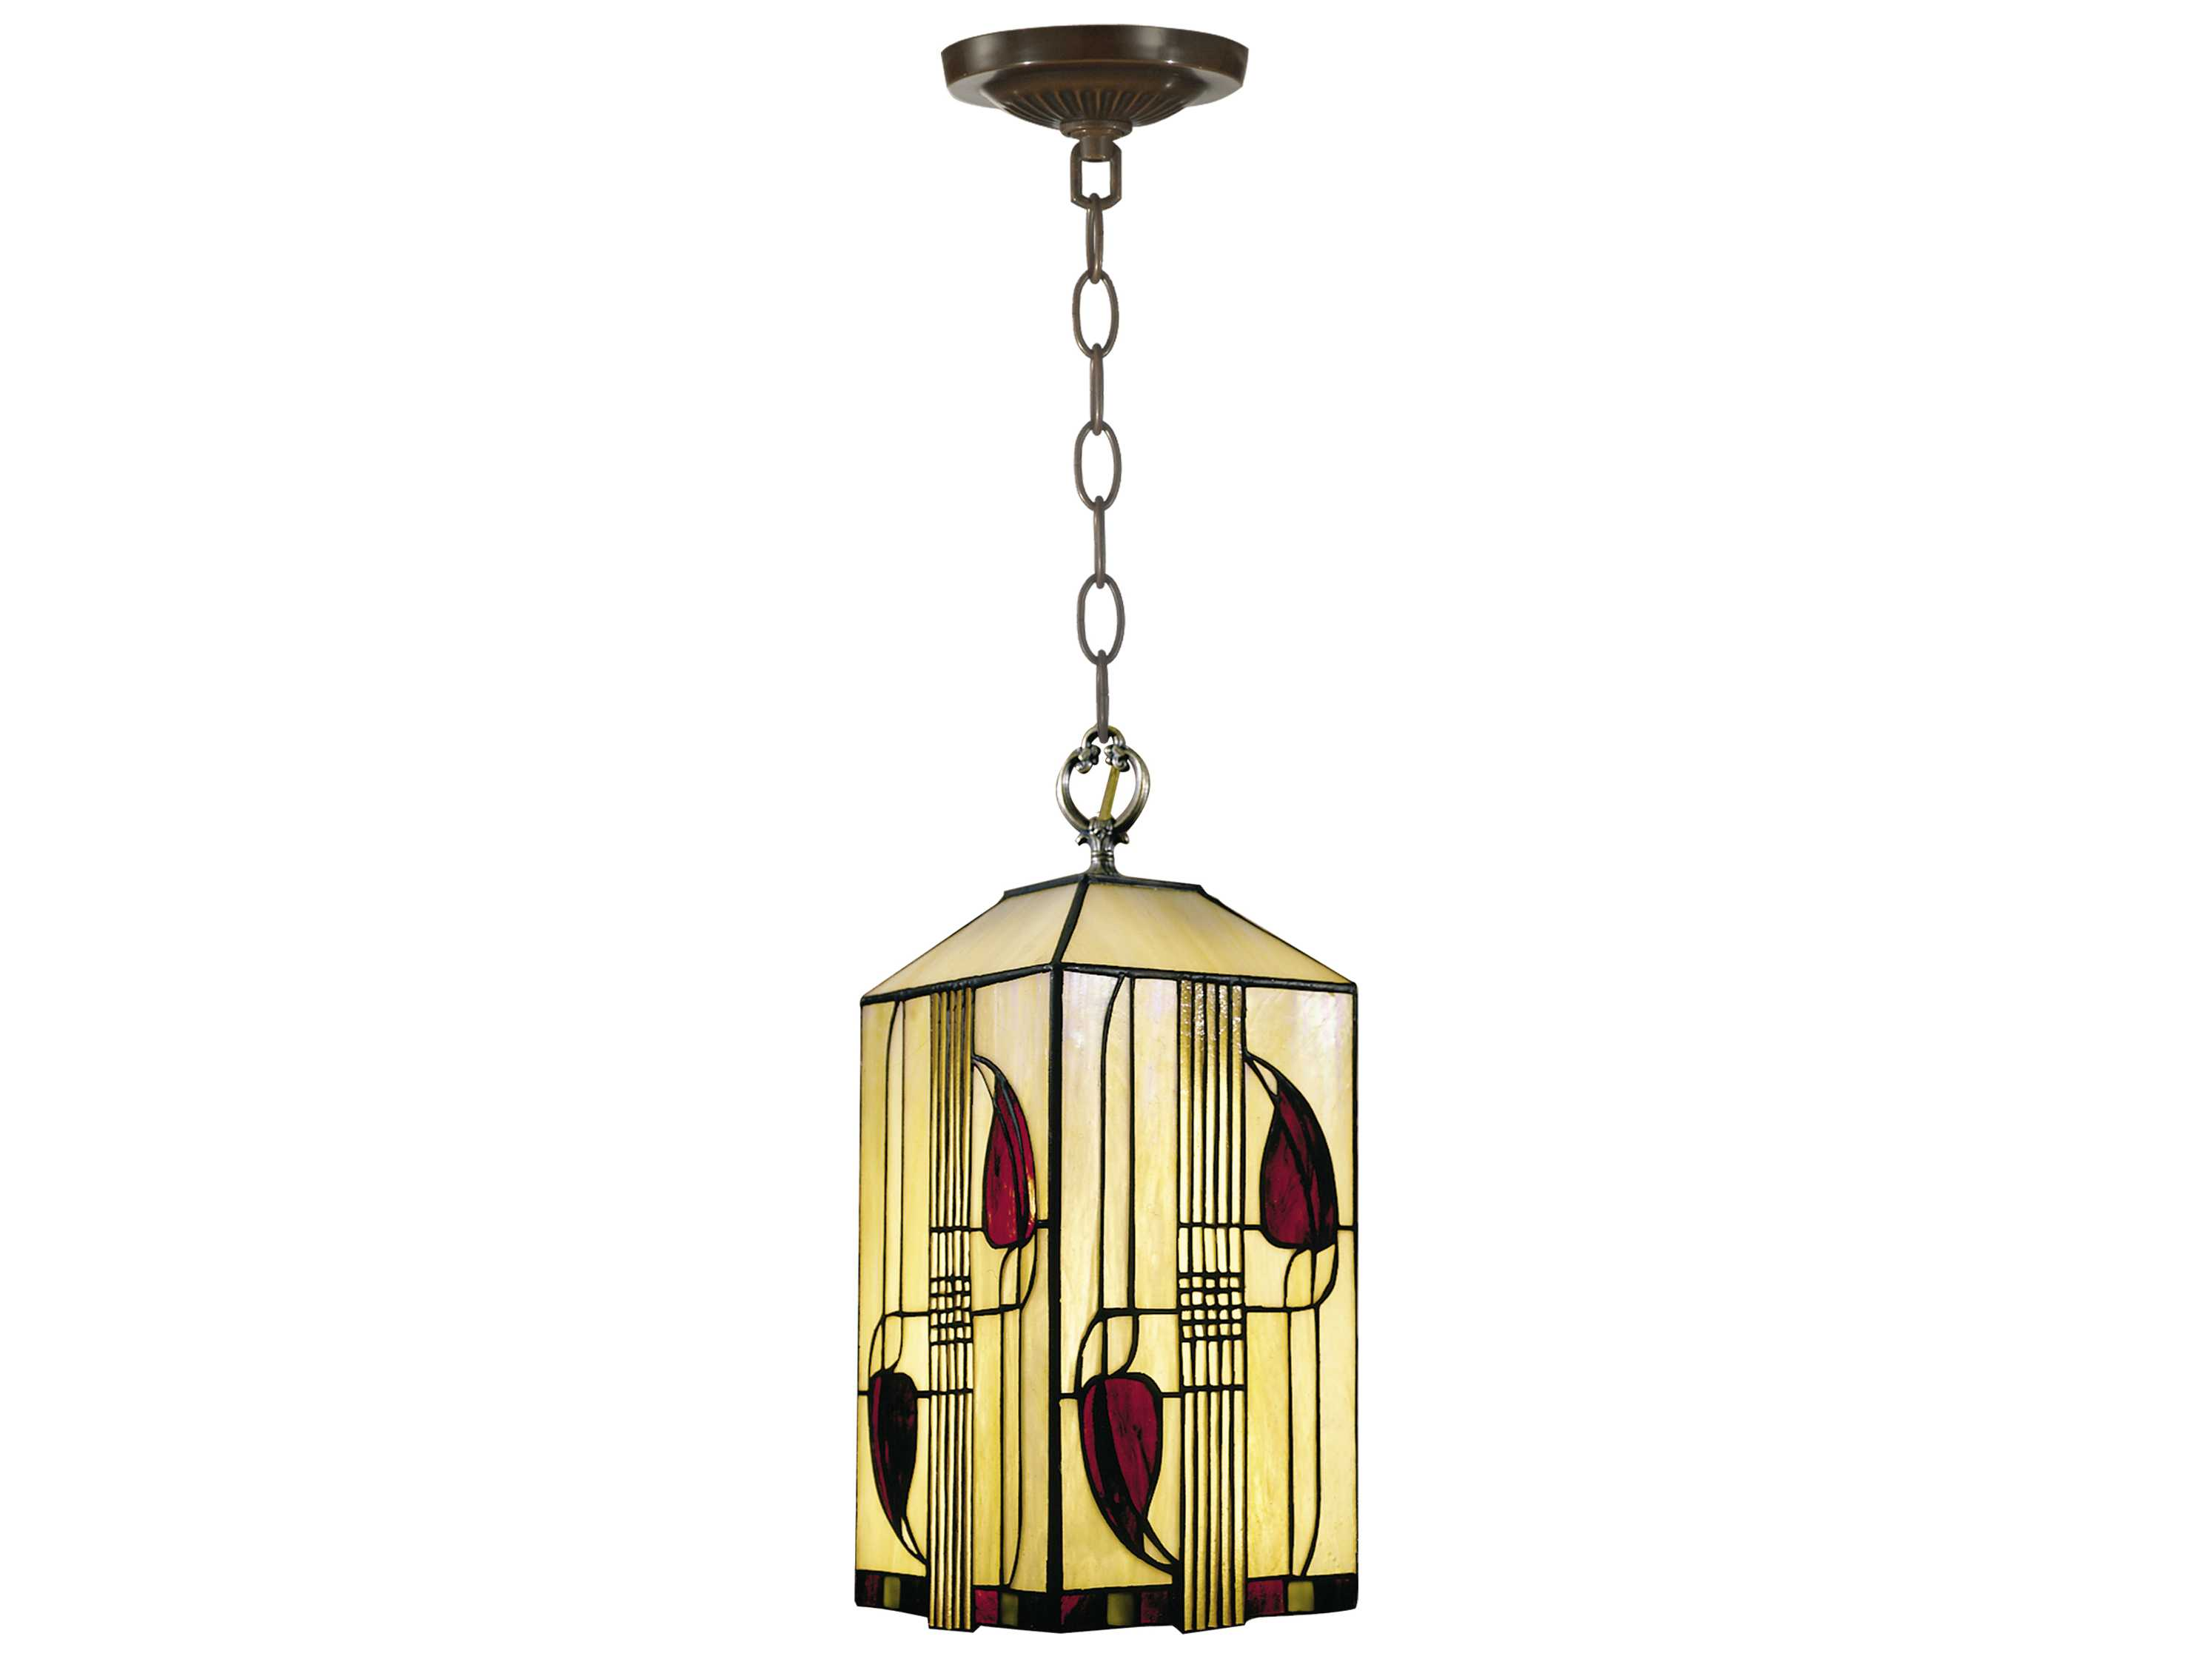 Foyer Lighting Tiffany Style : Dale tiffany henderson mackintosh foyer pendant lta